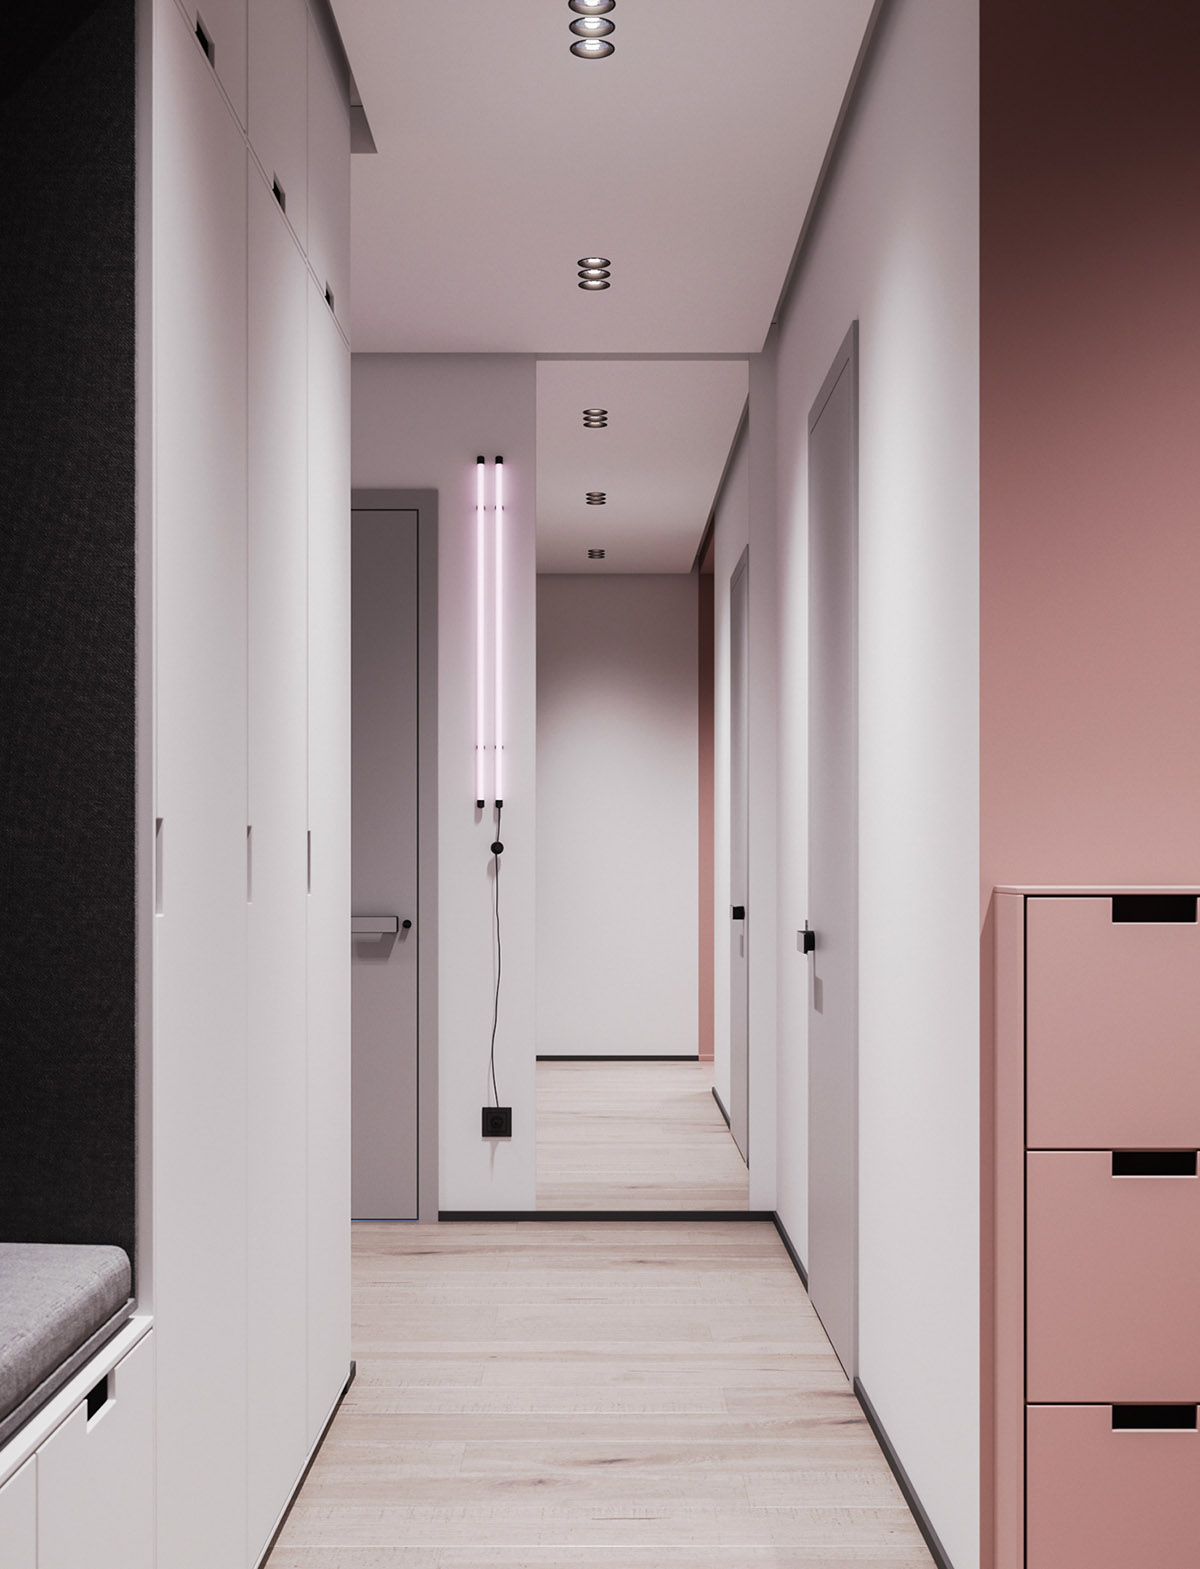 A Striking Example Of Interior Design Using Pink And Grey images 21